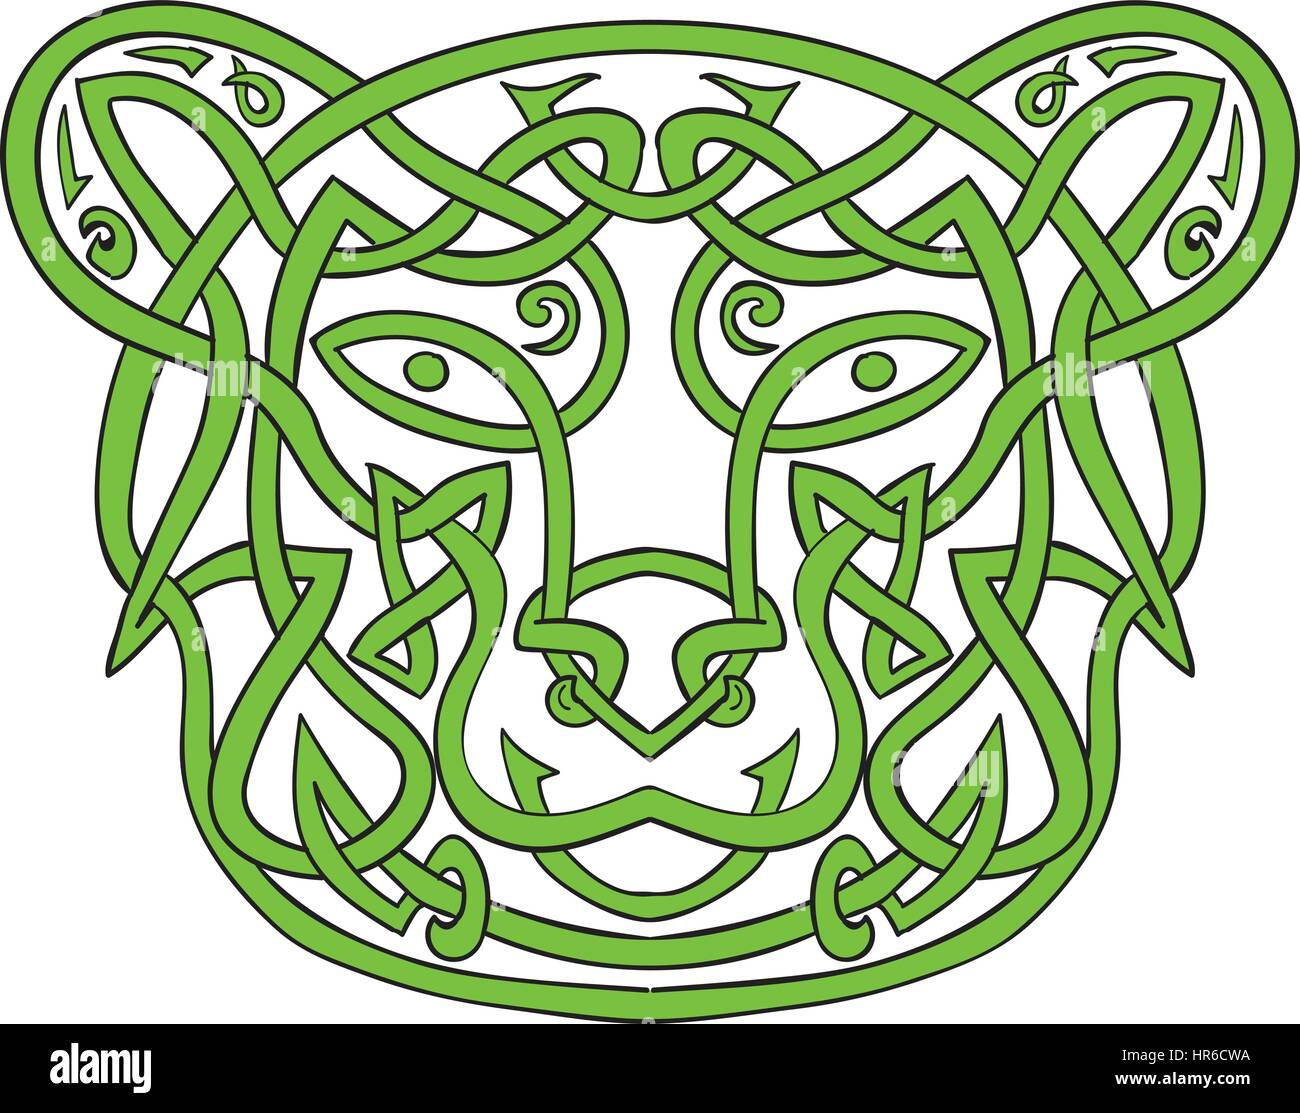 Illustration Of Stylized Bear Made In Celtic Knot Called Icovellavna Plait Work Or Knotwork Woven Into Unbroken Cord Design